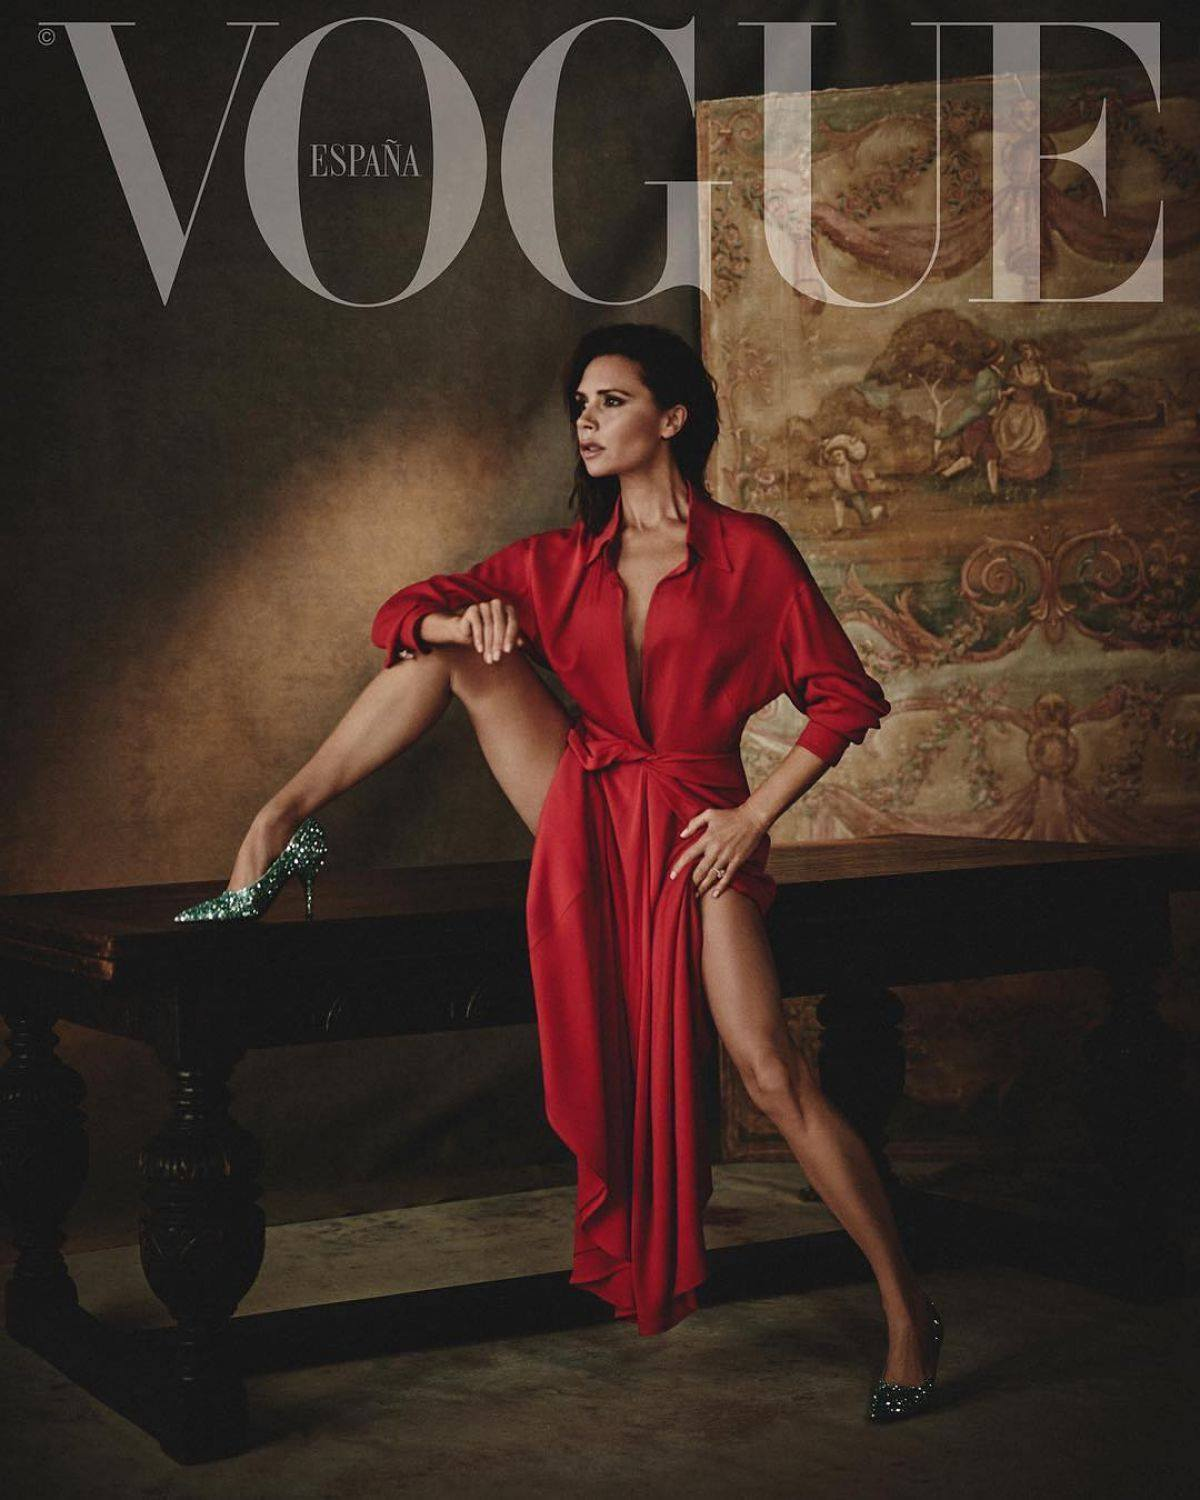 Vogue Spain February 2018 Victoria Beckham by Boo George